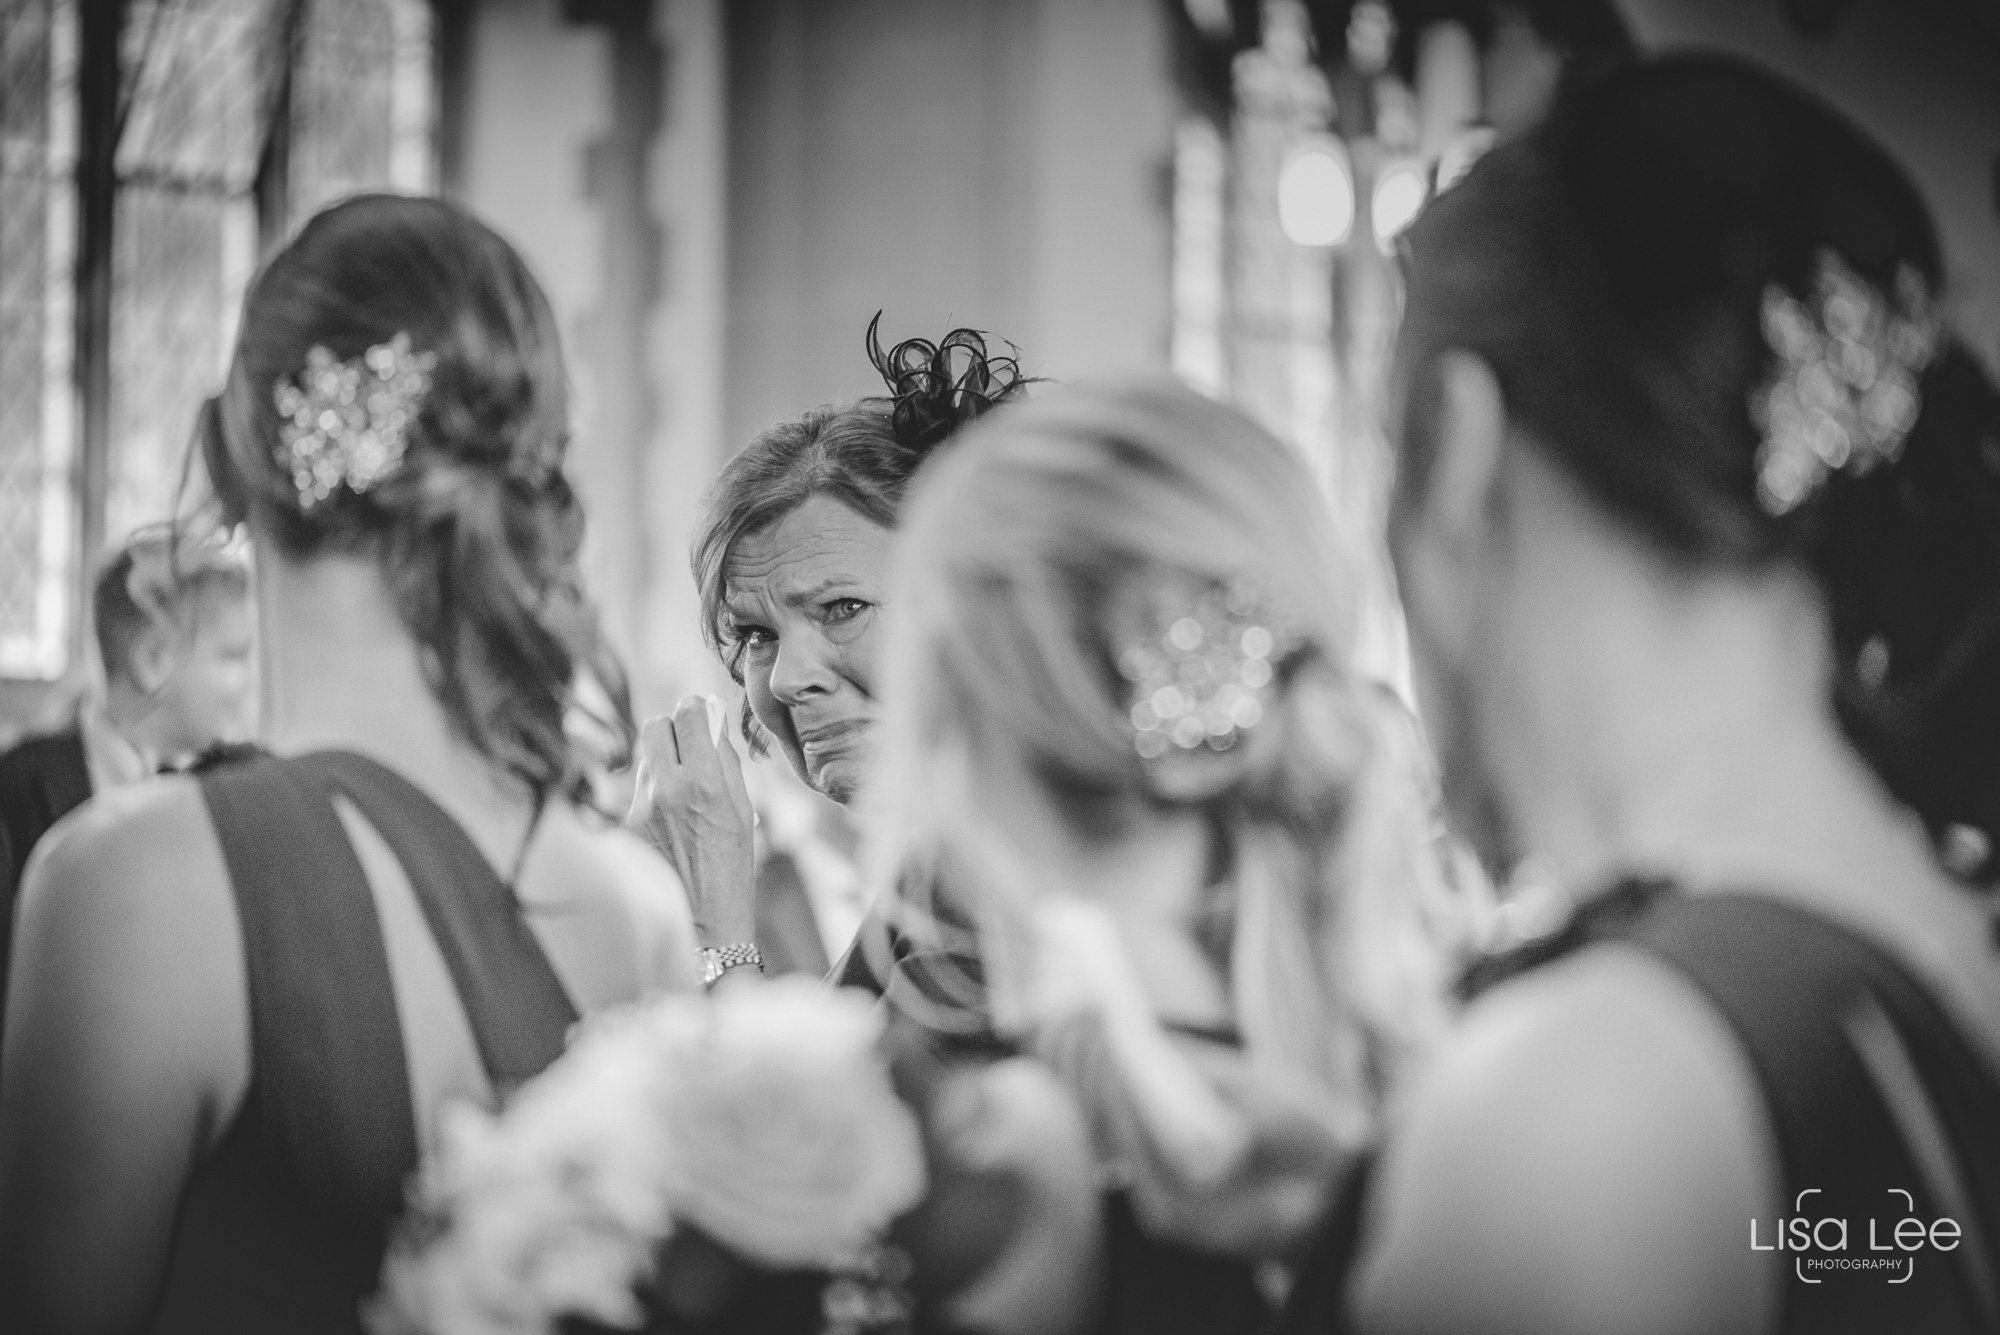 All-Saints-Church-Lisa-Lee-Documentary-Wedding-Photography-7.jpg